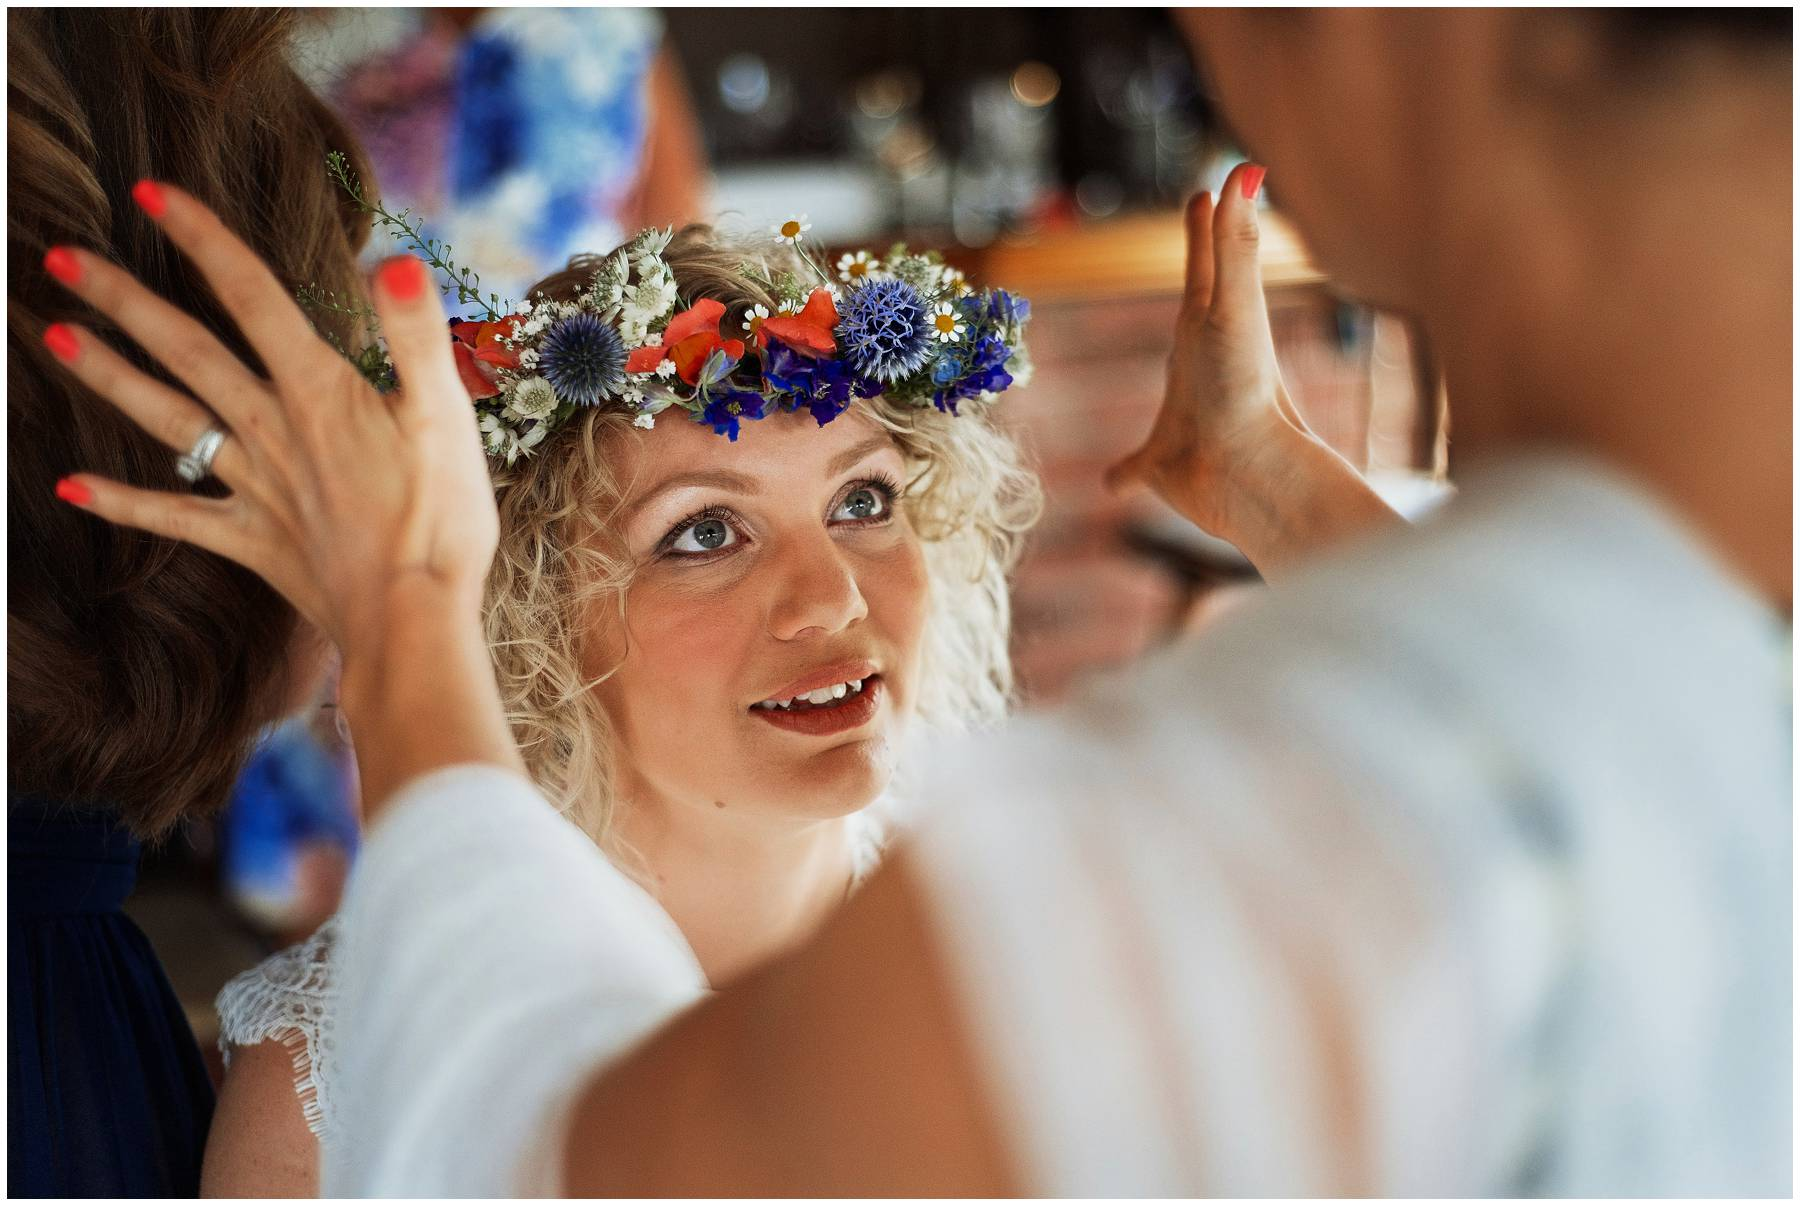 Festival bride with flower crown